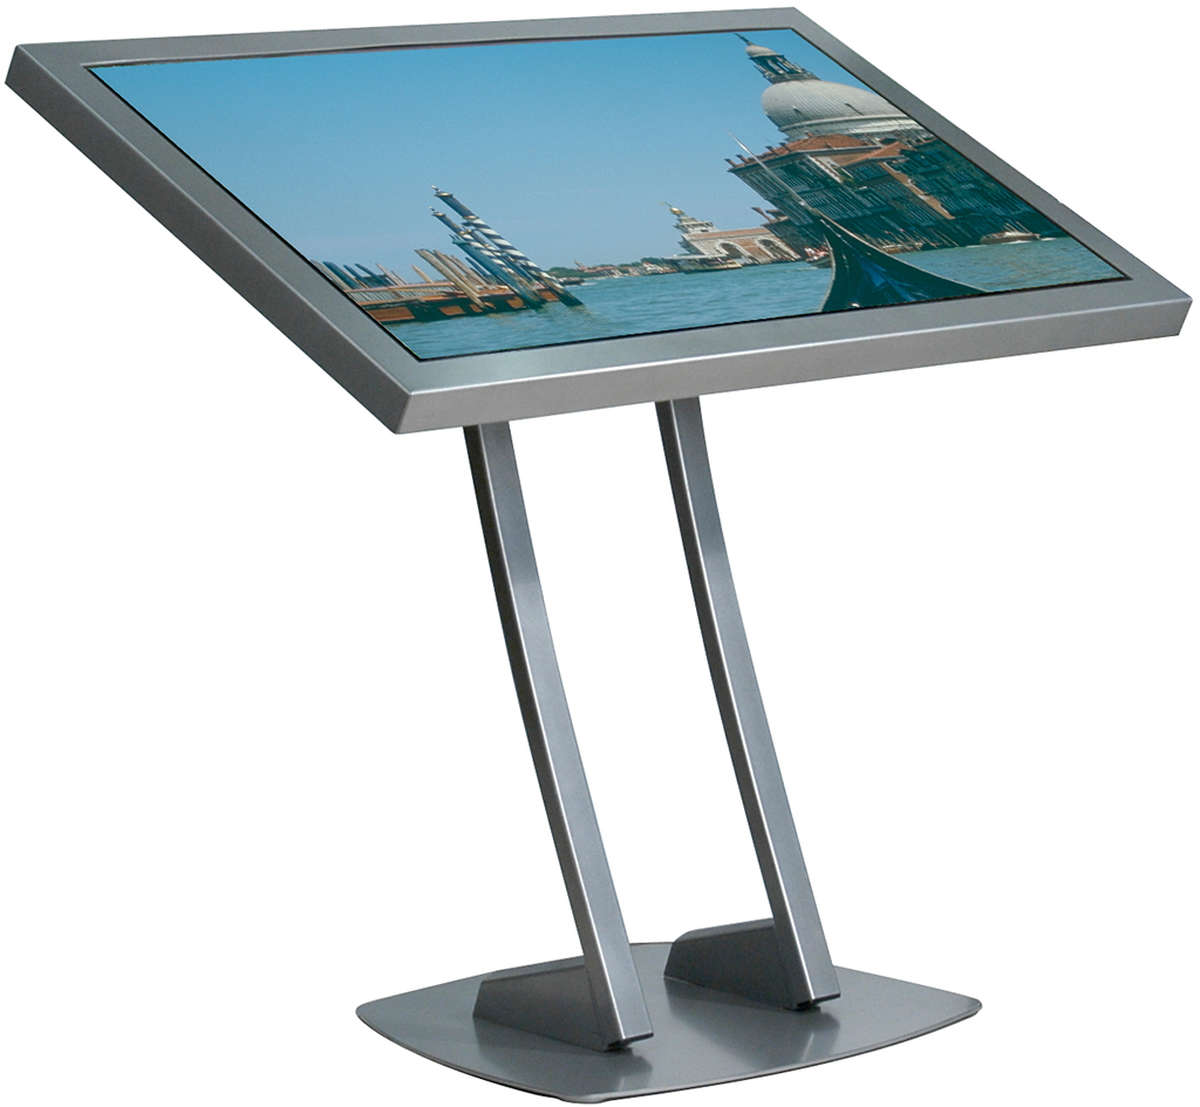 Unicol PA1 Parabella stand - designer low level lectern style for screens from 33 to 50 inches, Max. Load 60kg. product image